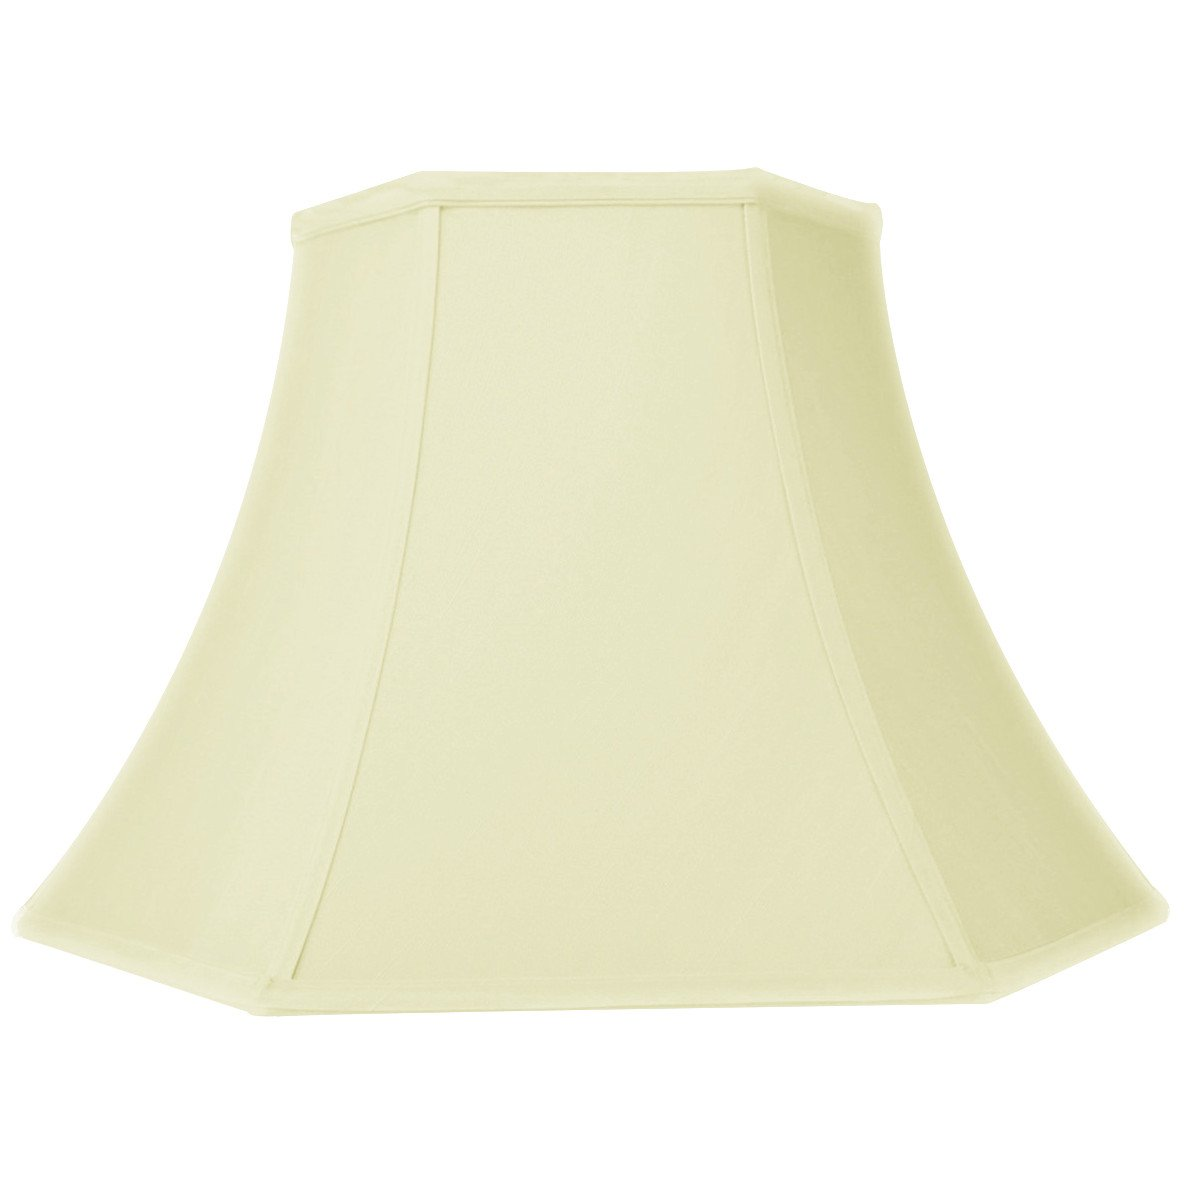 8x16x12 Hexagon Bell Eggshell Lampshade with Brass Spider fitter By Home Concept - Perfect for table lamps and some desk lamps -Medium, Egg Shell